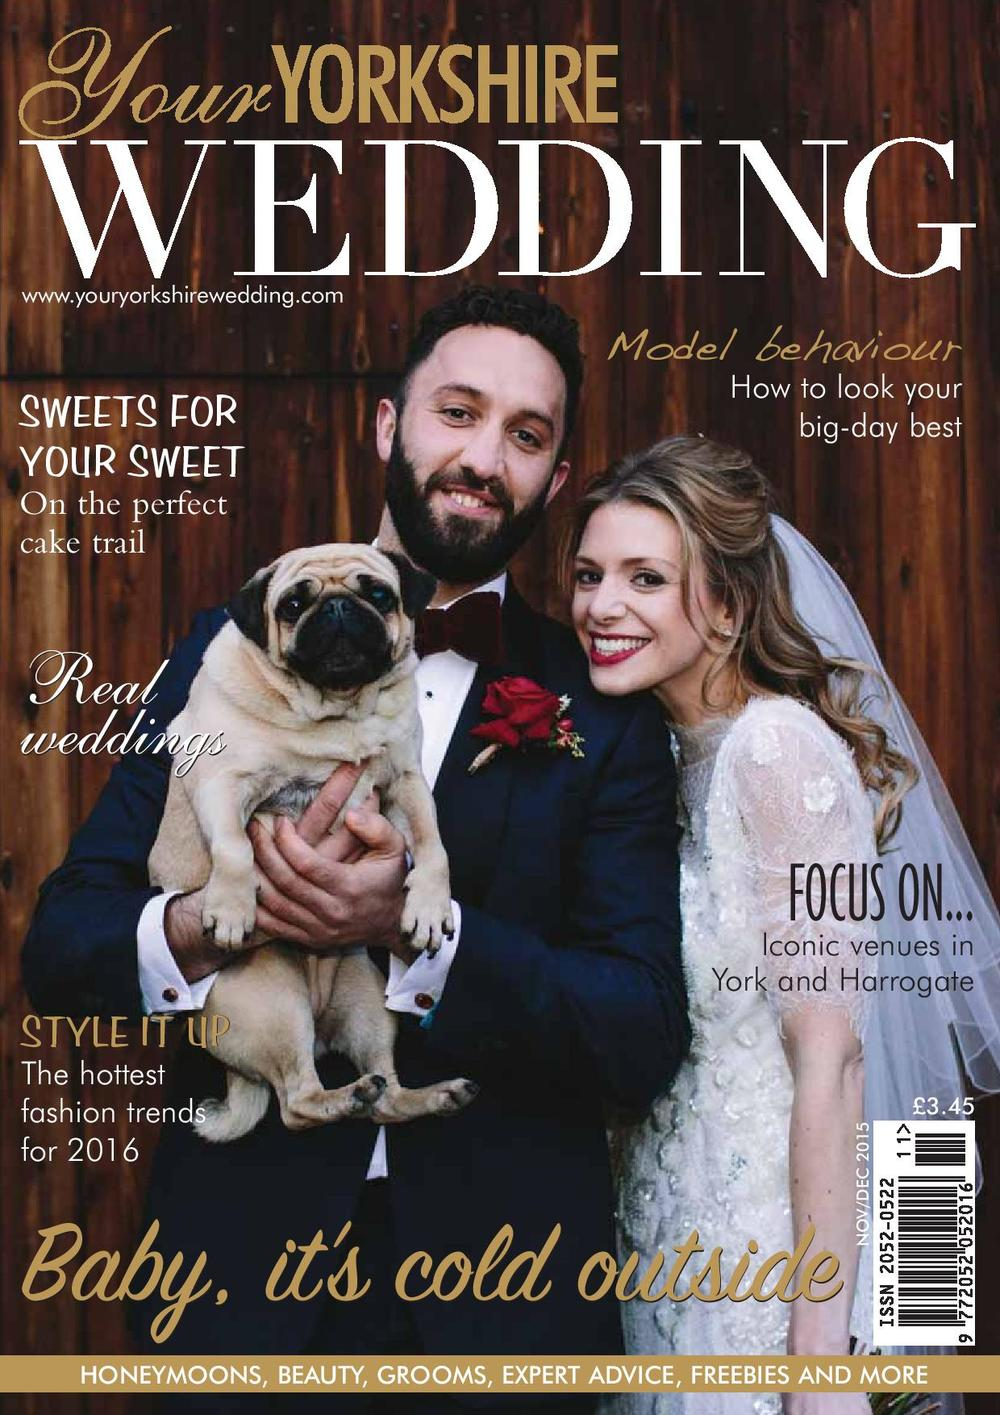 The Normans Weddings on the cover of Your Yorkshire Wedding magazine.jpg